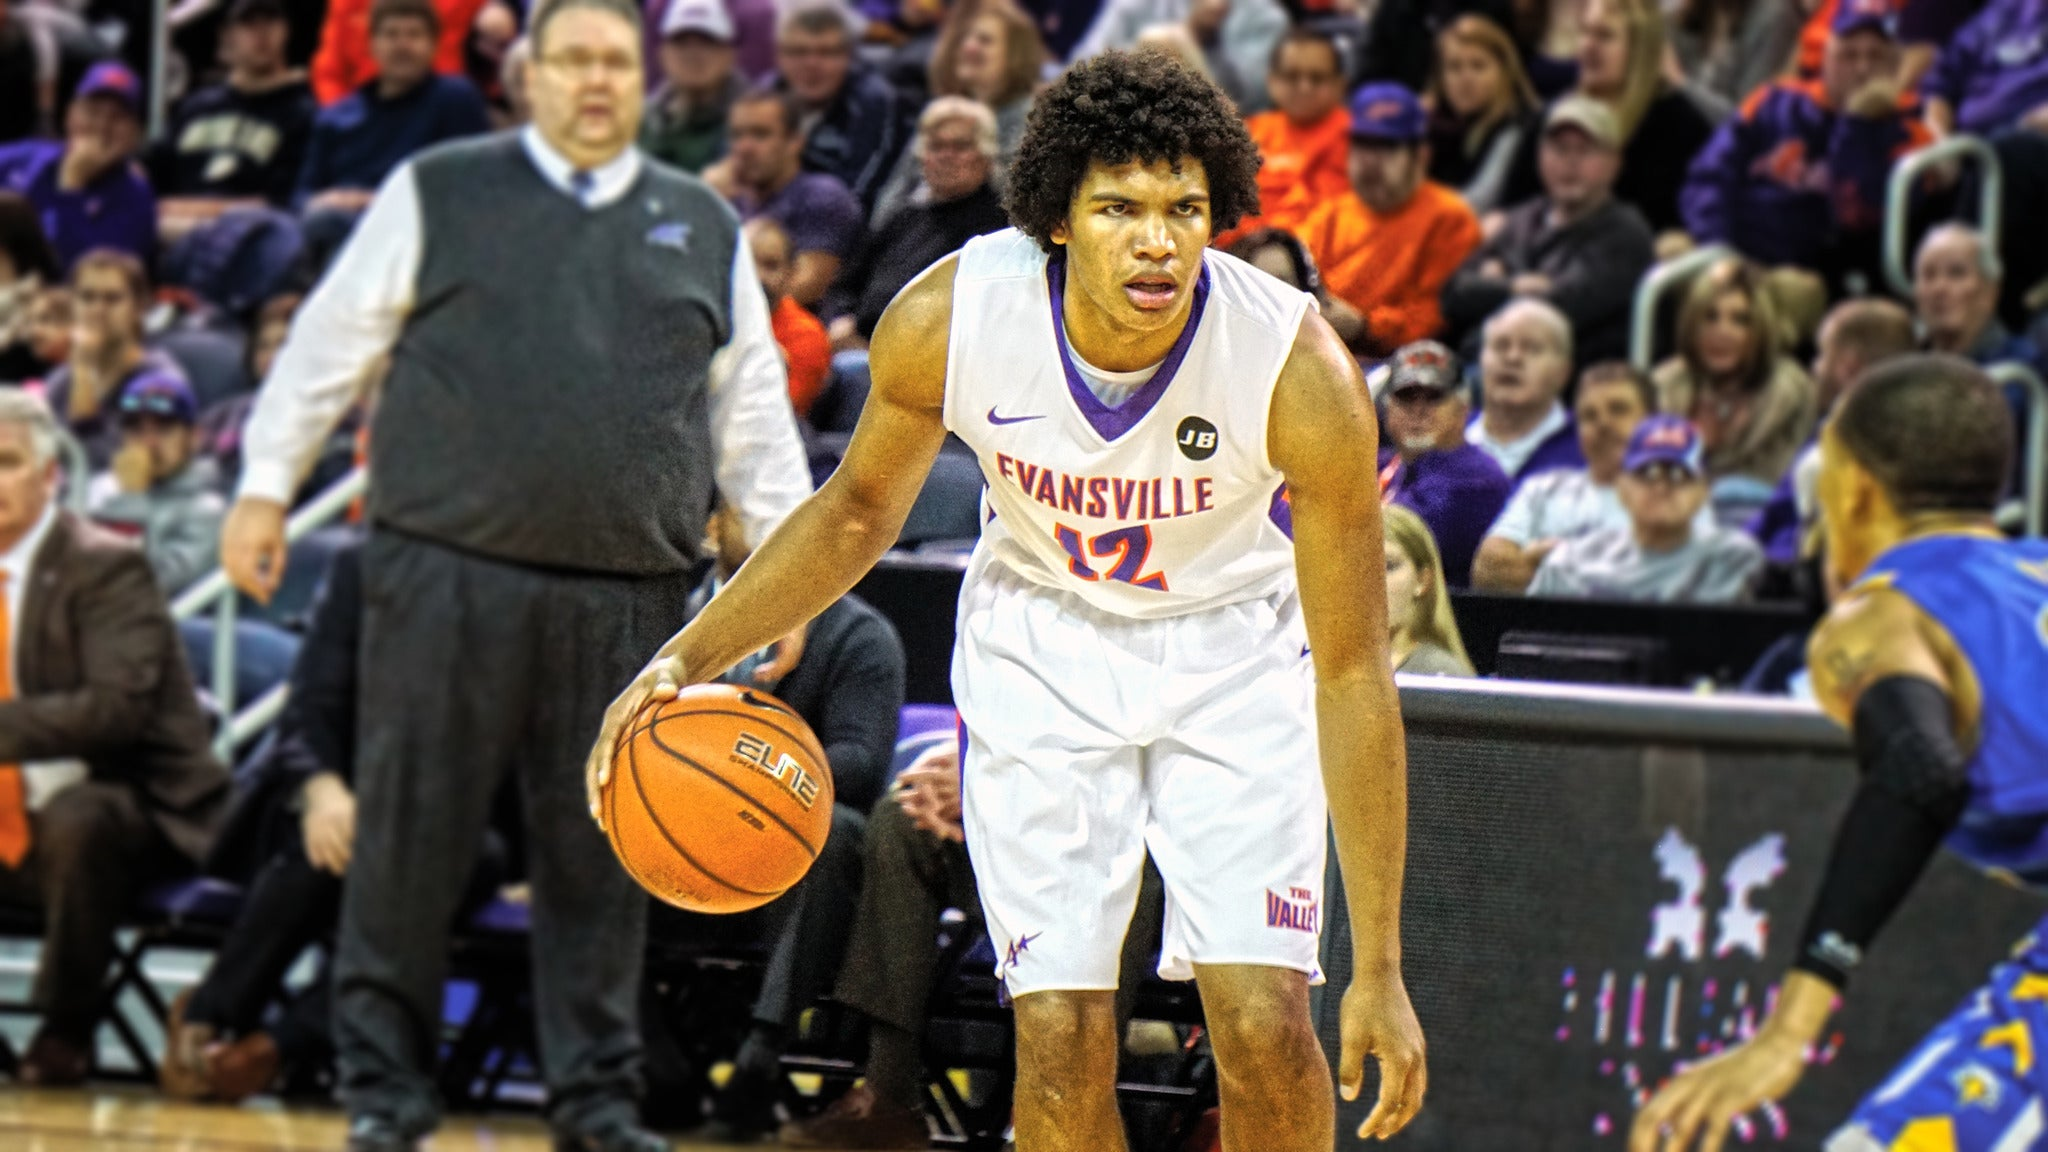 University of Evansville Aces Mens Basketball at Ford Center